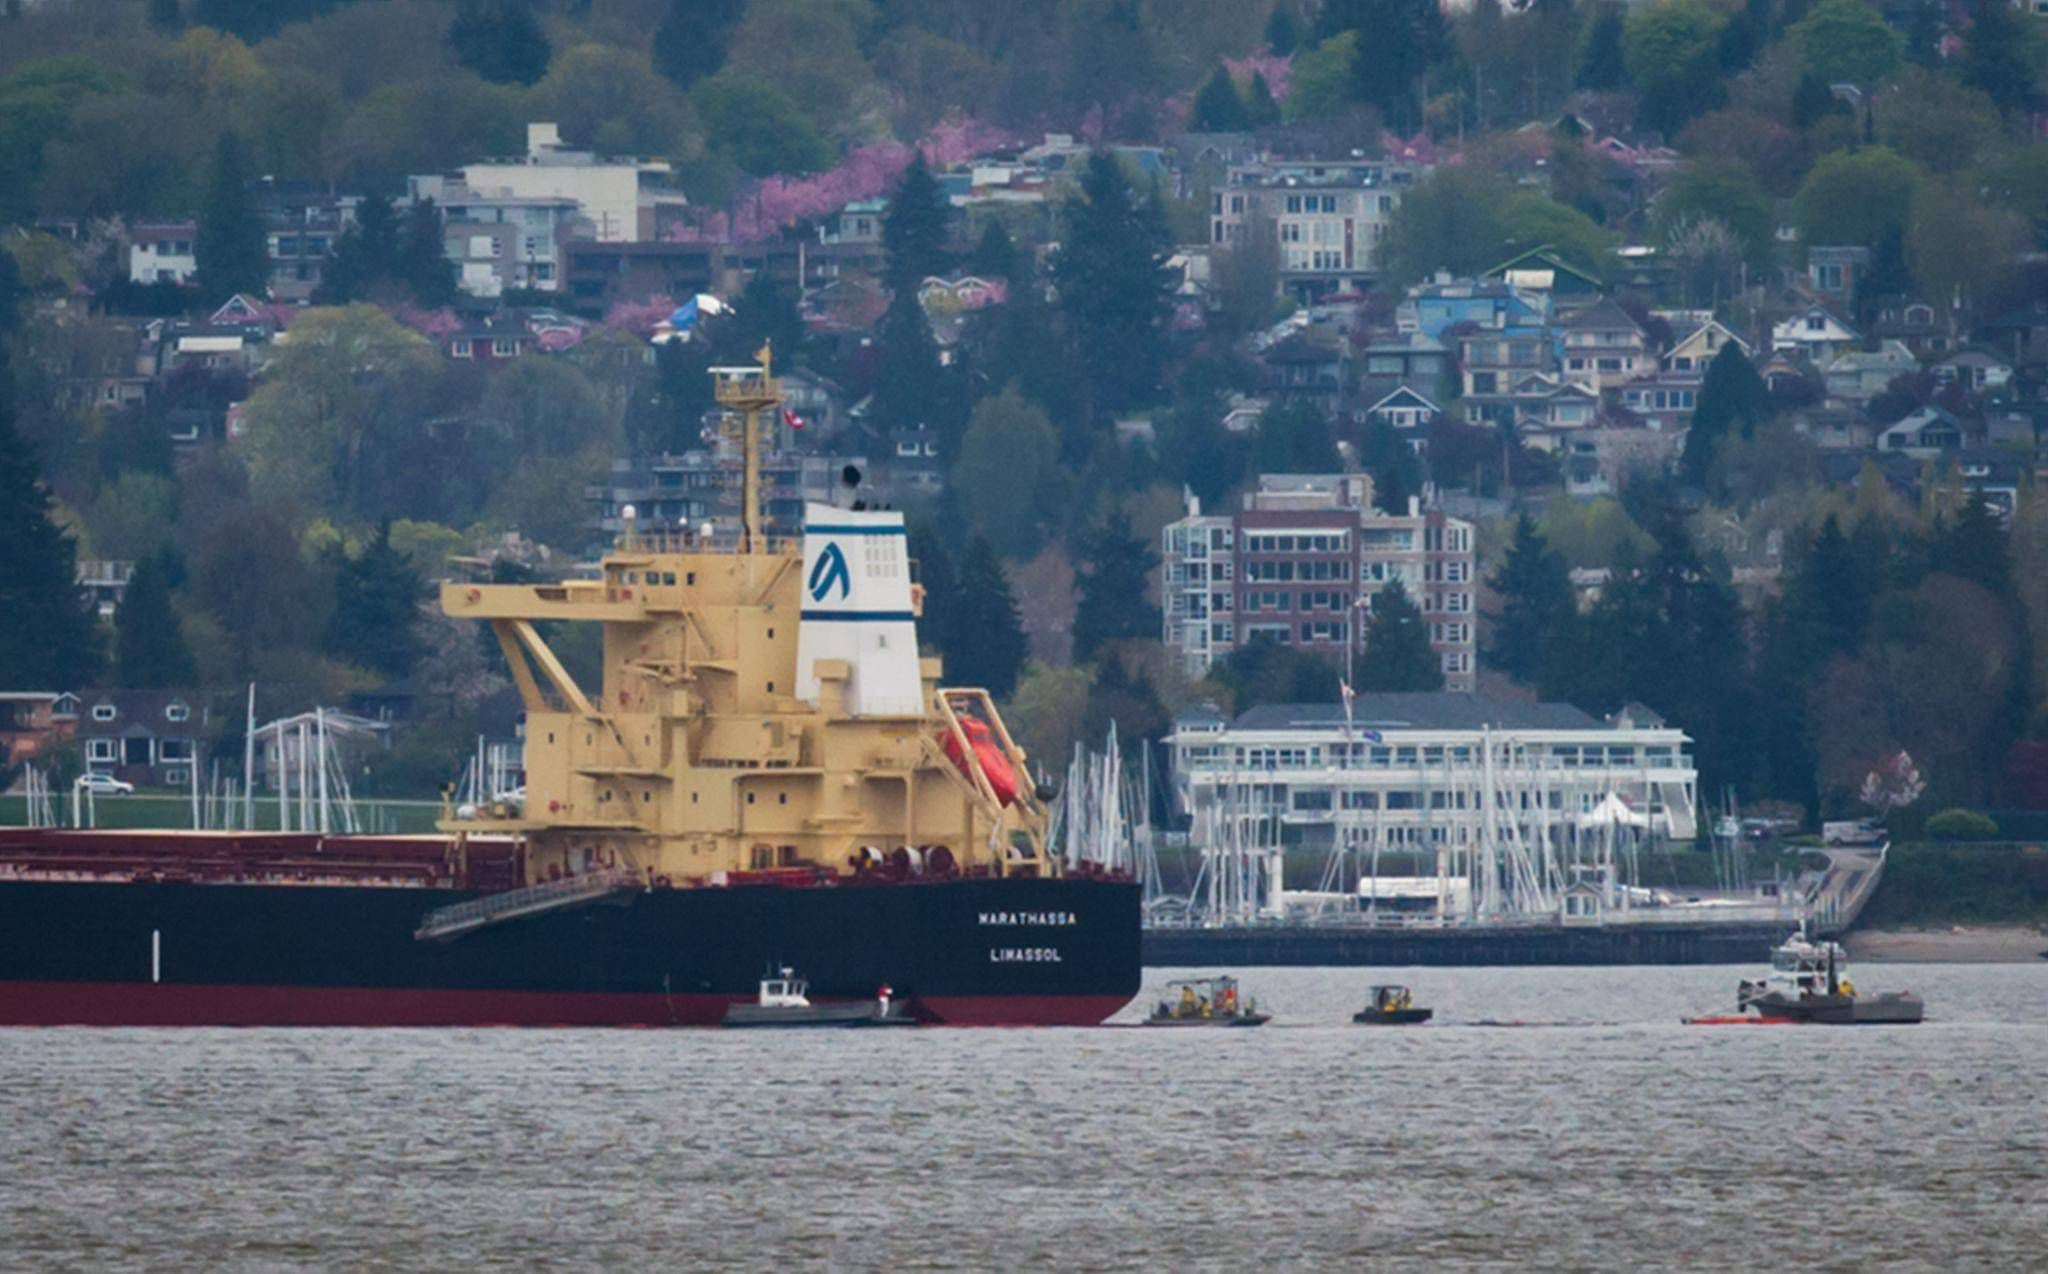 Owner of MV Marathassa charged for 2015 oil spill in Vancouver's